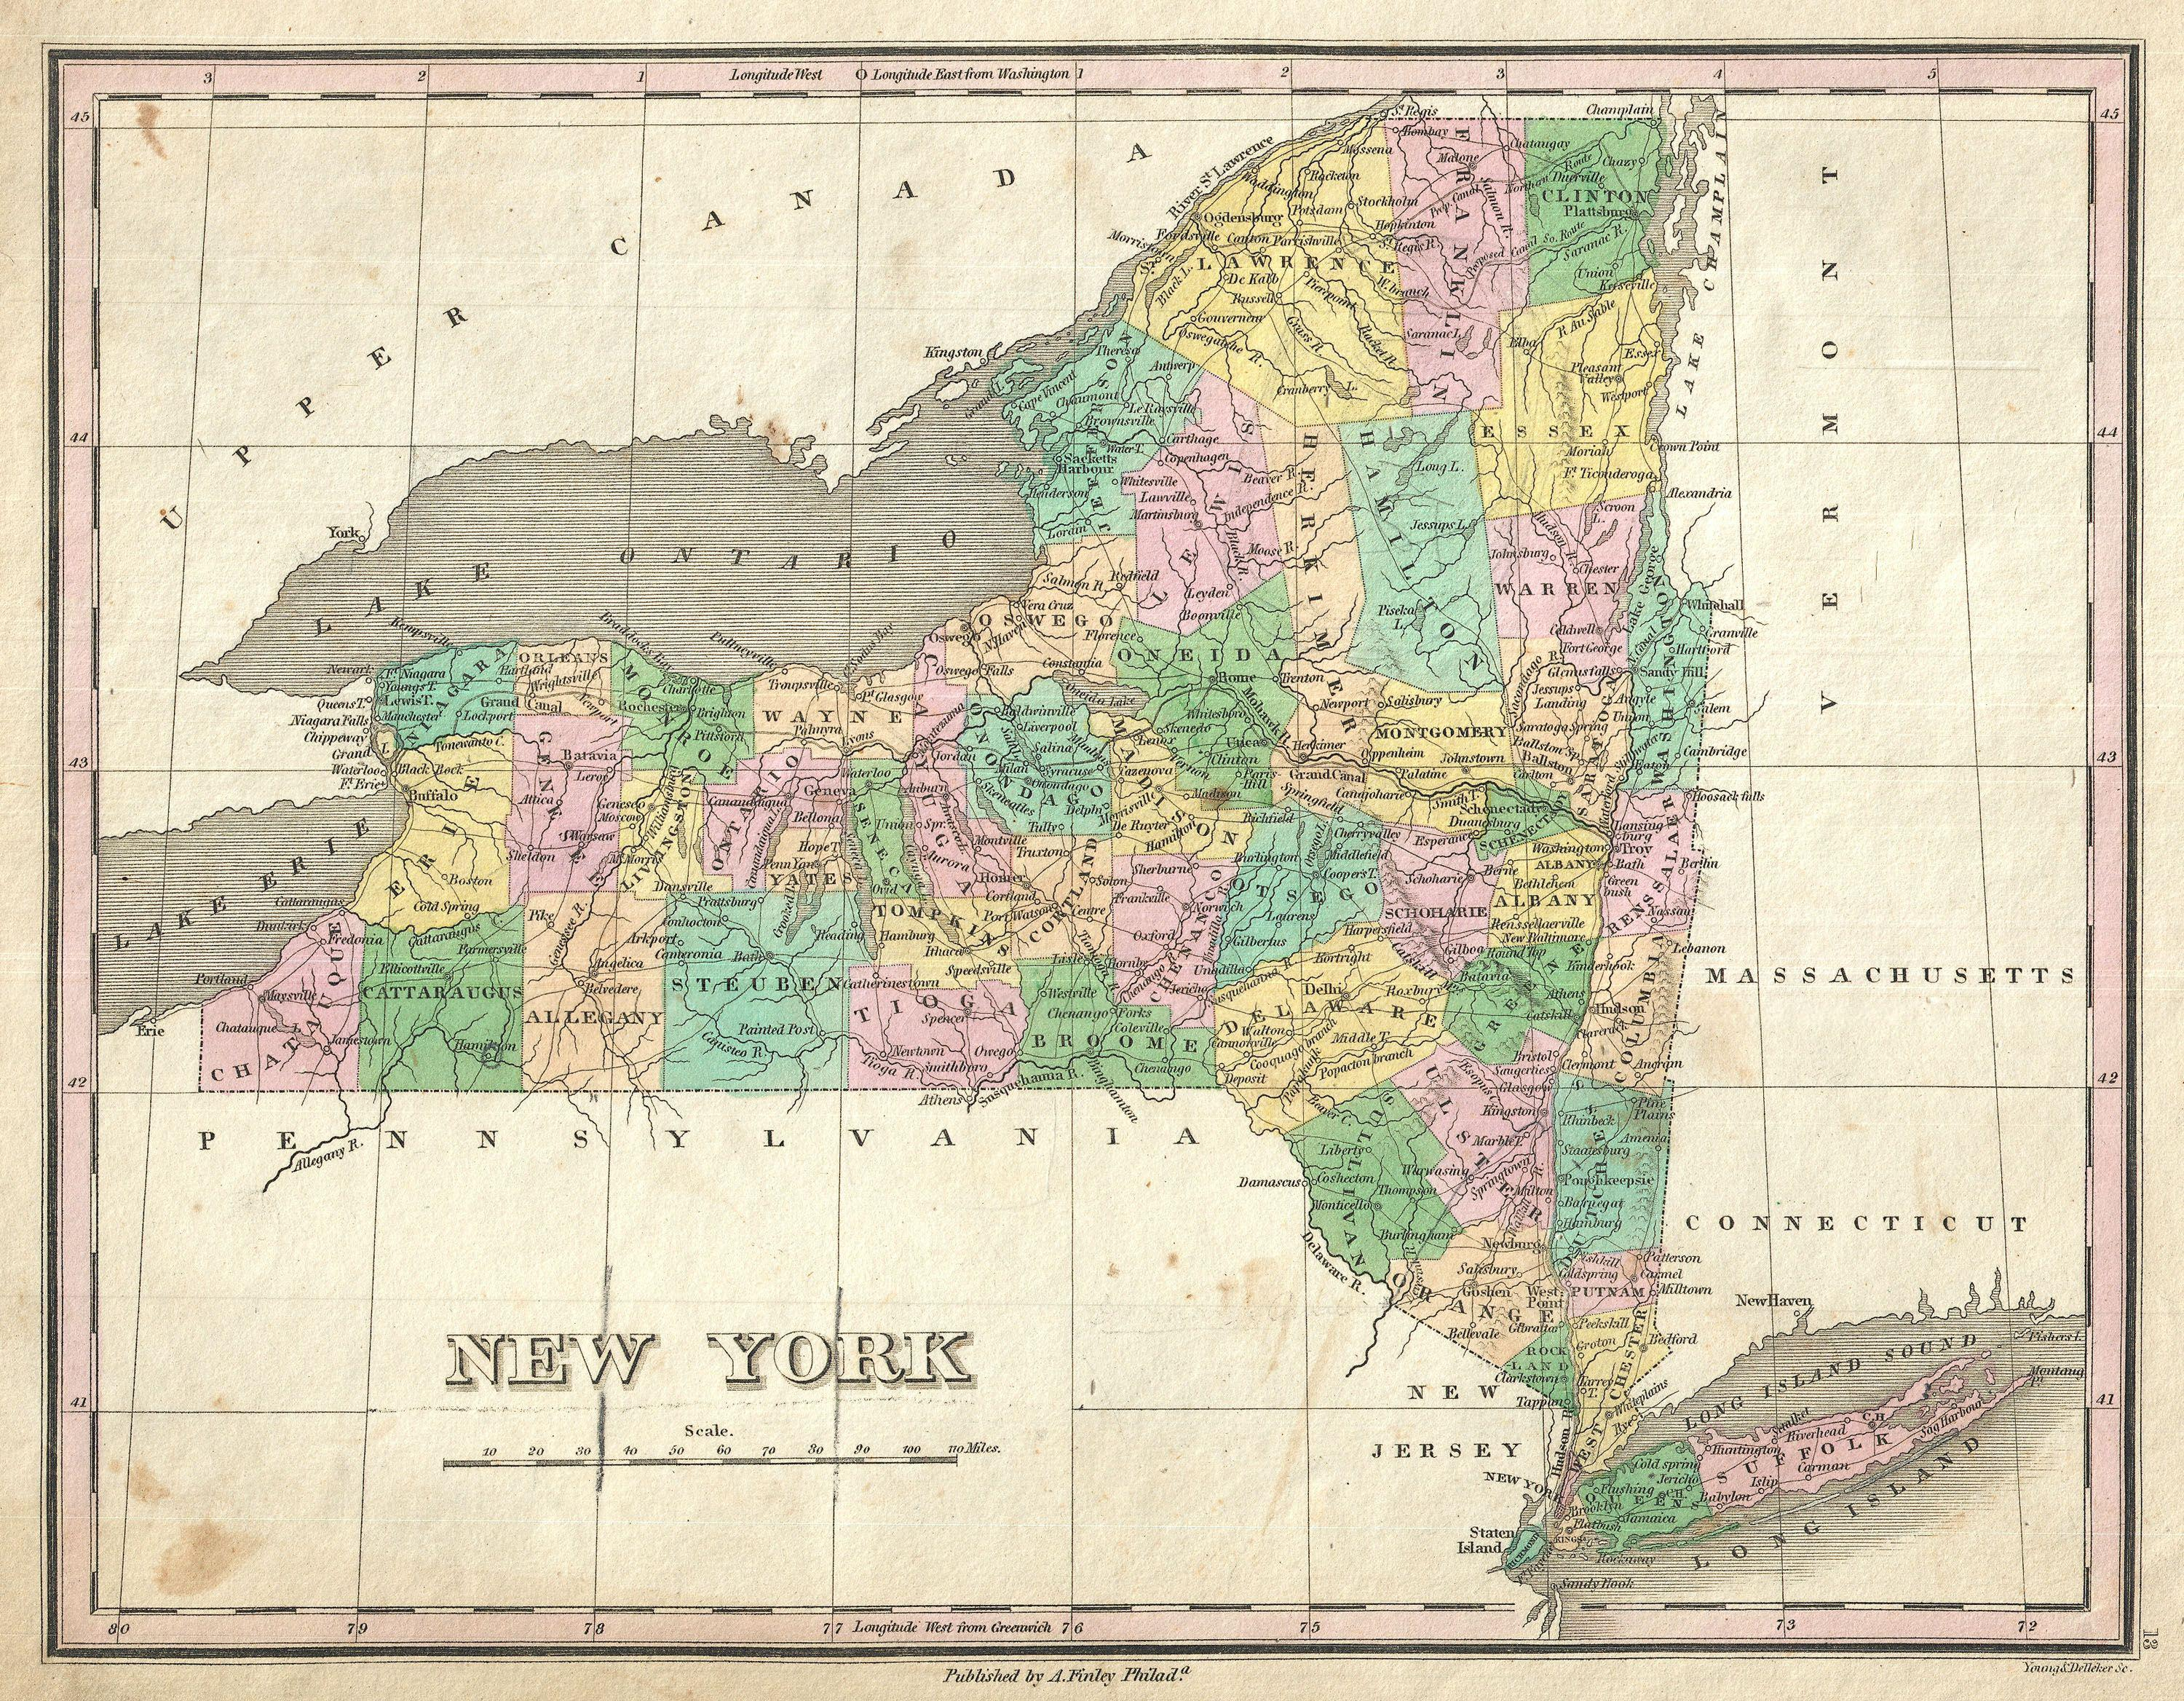 State Map Of New York.File 1827 Finley Map Of New York State Geographicus Newyork